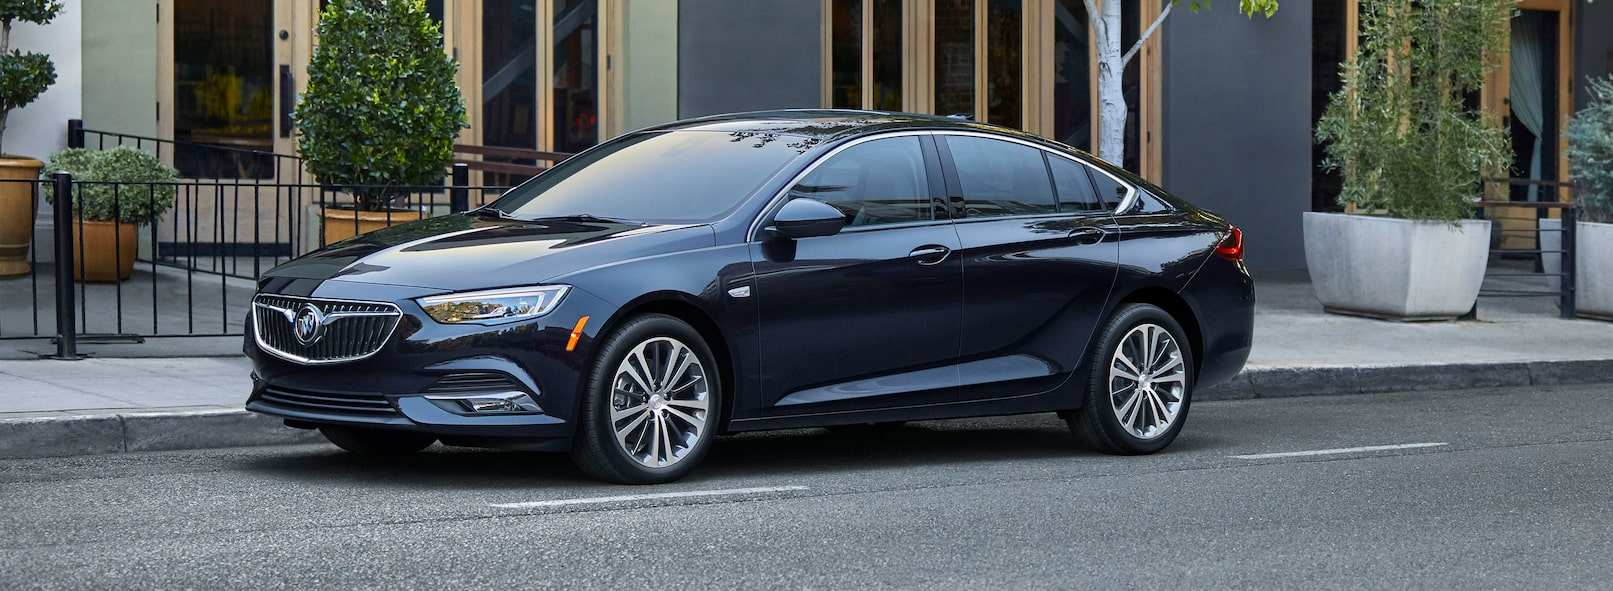 56 Concept of Best Buick 2019 Sedan Engine Reviews for Best Buick 2019 Sedan Engine